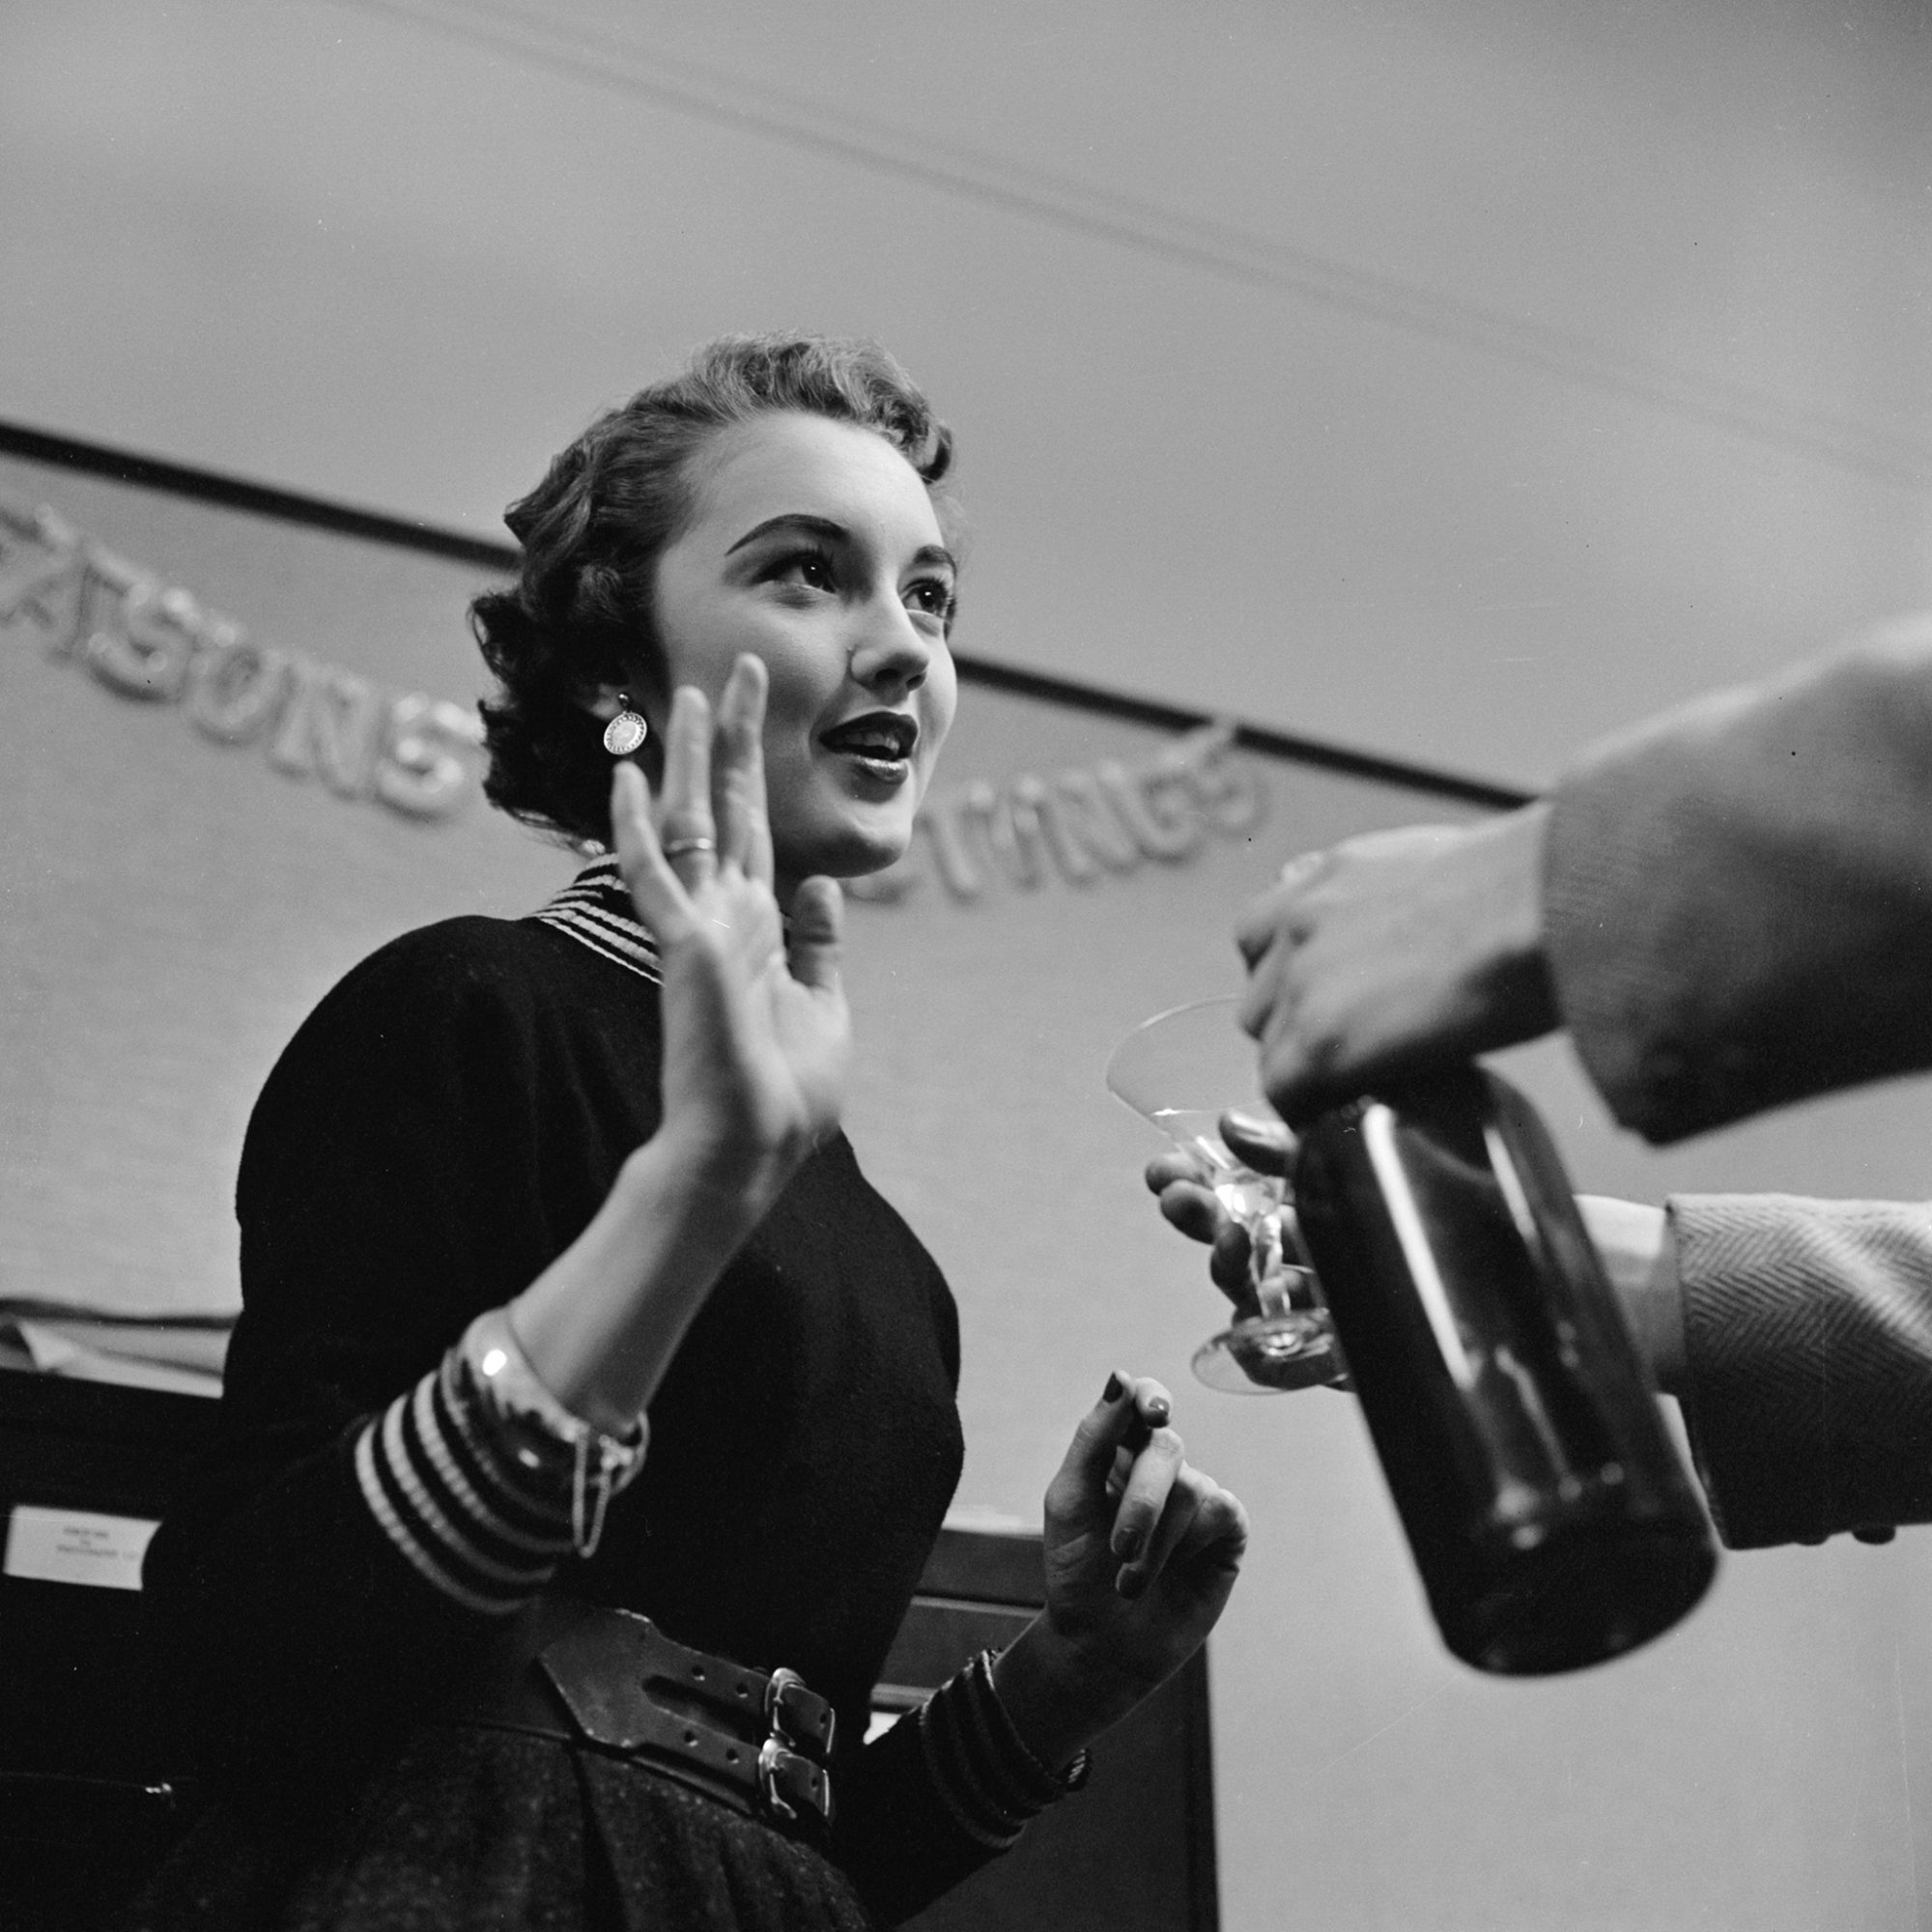 FWX HOW TO TURN DOWN A DRINK YOU DONT LIKE